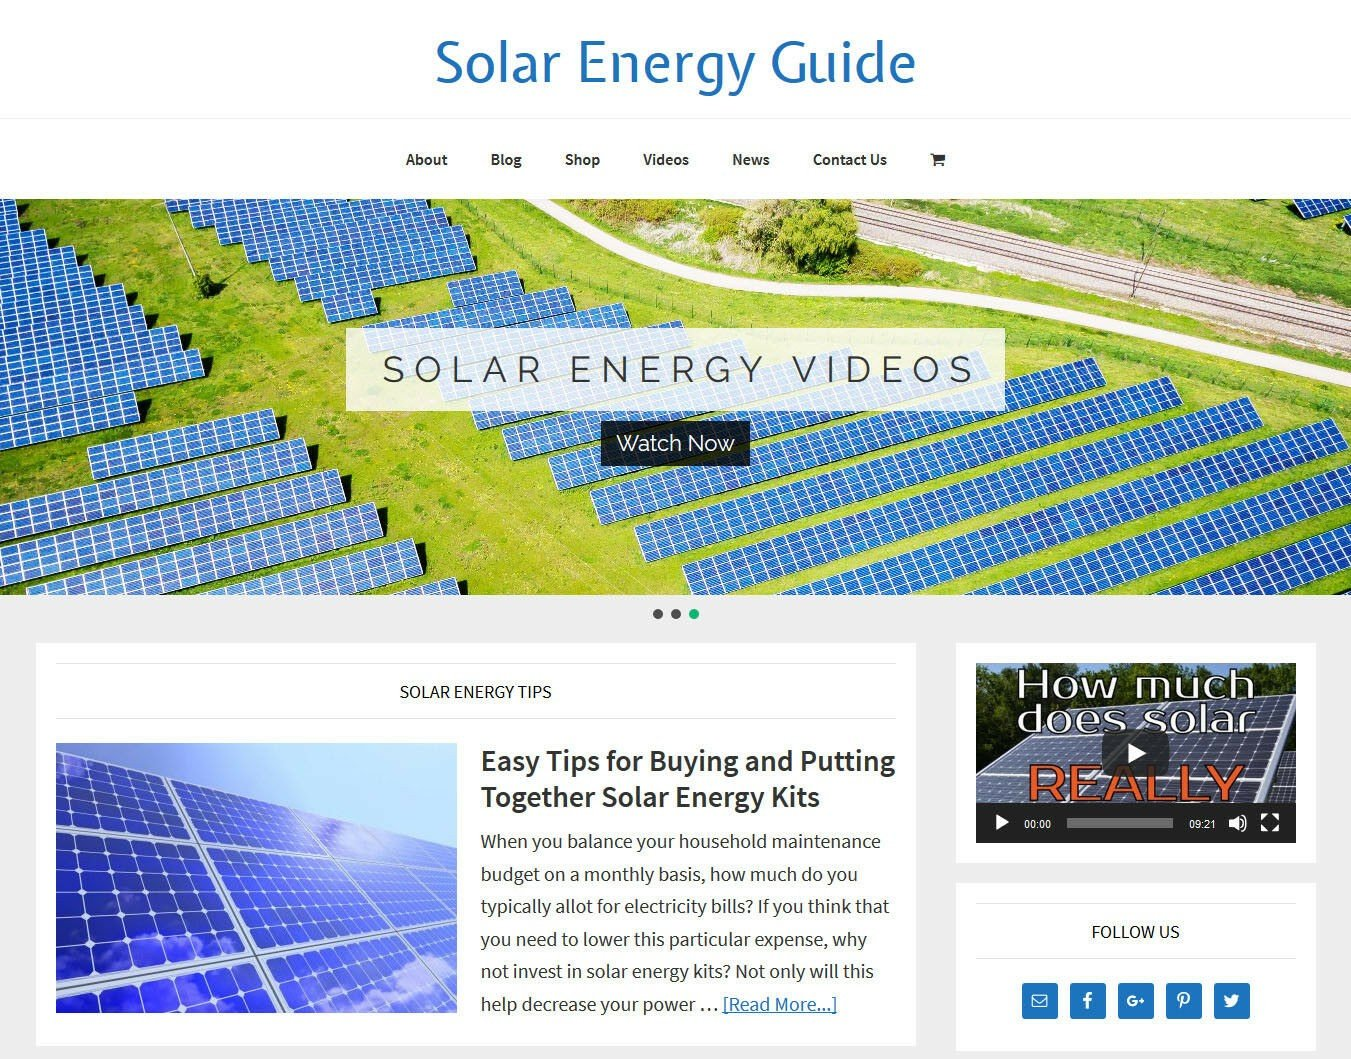 [NEW DESIGN] * SOLAR ENERGY * store blog website business for sale AUTO CONTENT